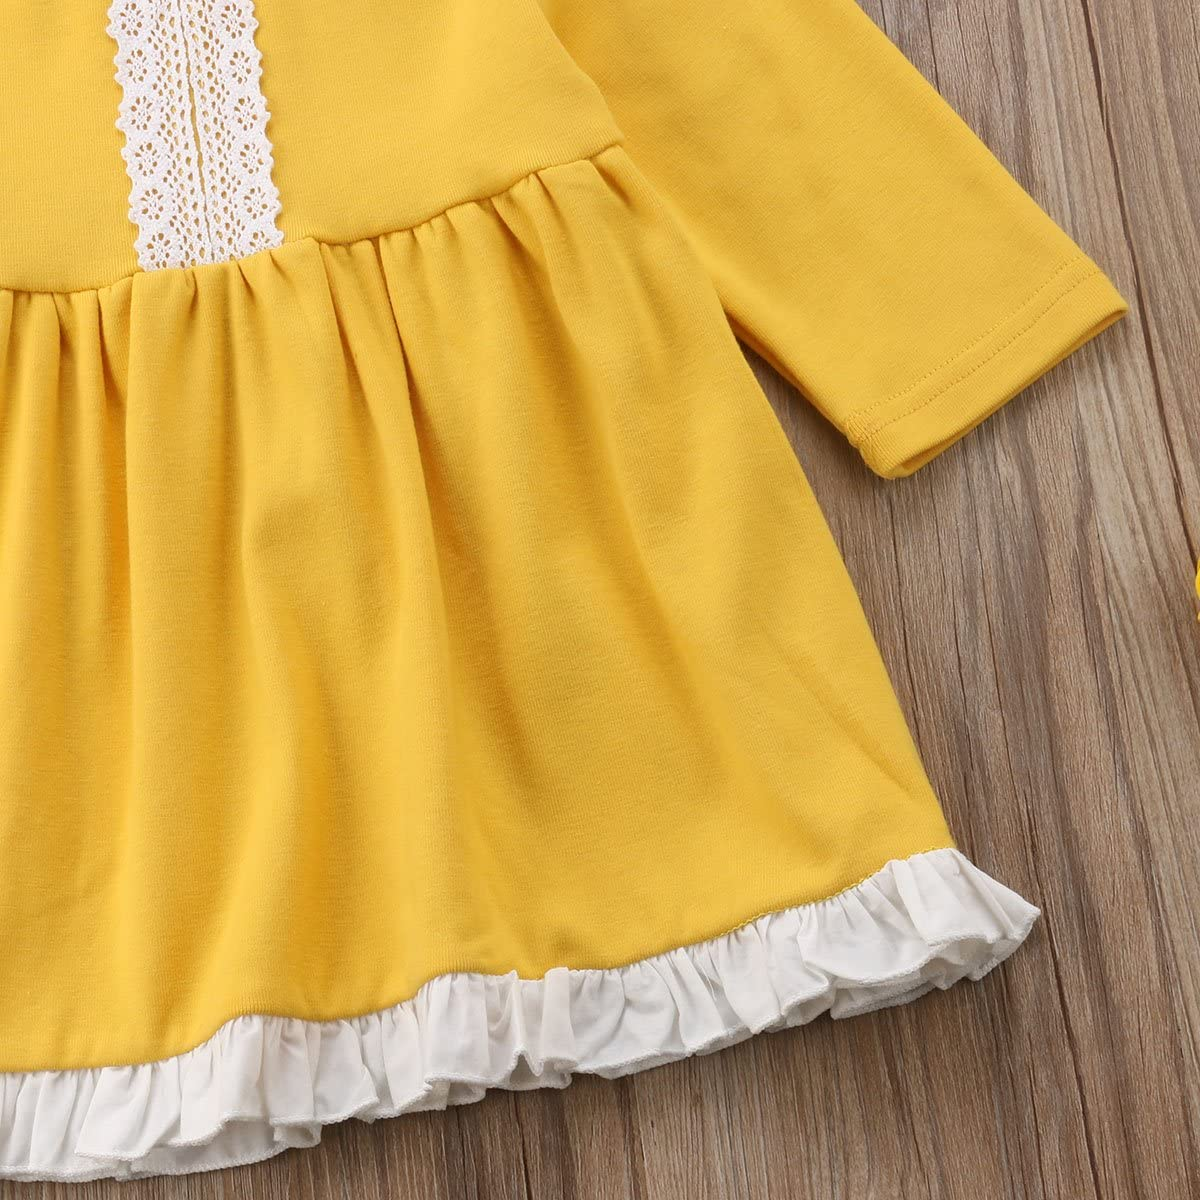 Toddler Baby Girl Kids Fall Long Sleeve Cute Ruffle Trimmed Casual Cotton Dress